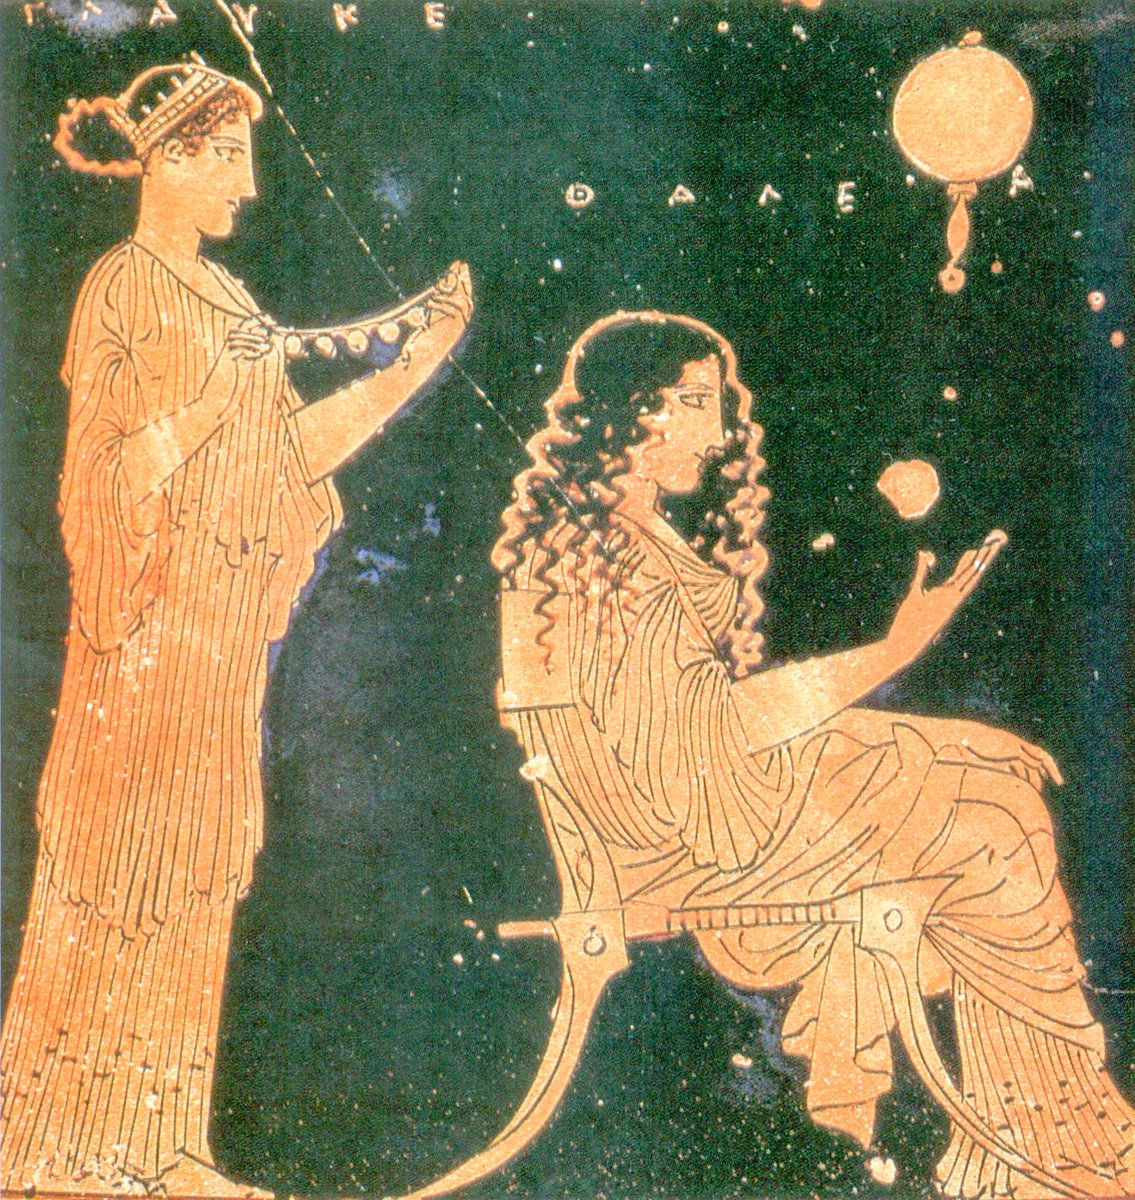 Women preparing for a wedding in a Greek relief on pottery. One woman sits in a chair, with long corkscrew curls; another stands behind her, holding up a necklace. Public domain.